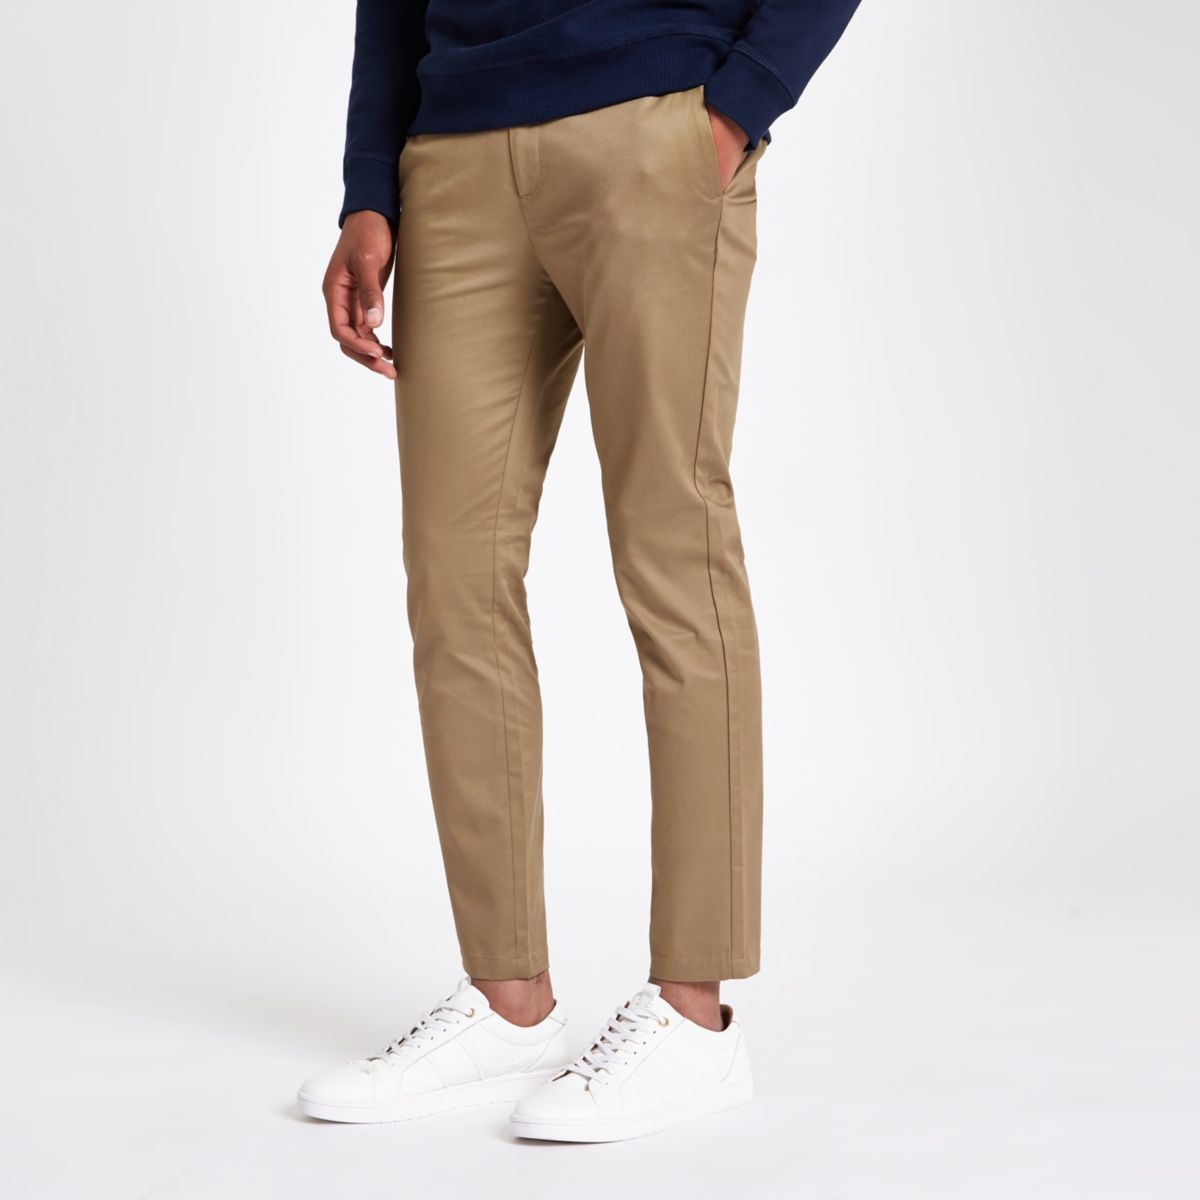 Light brown skinny cropped pants